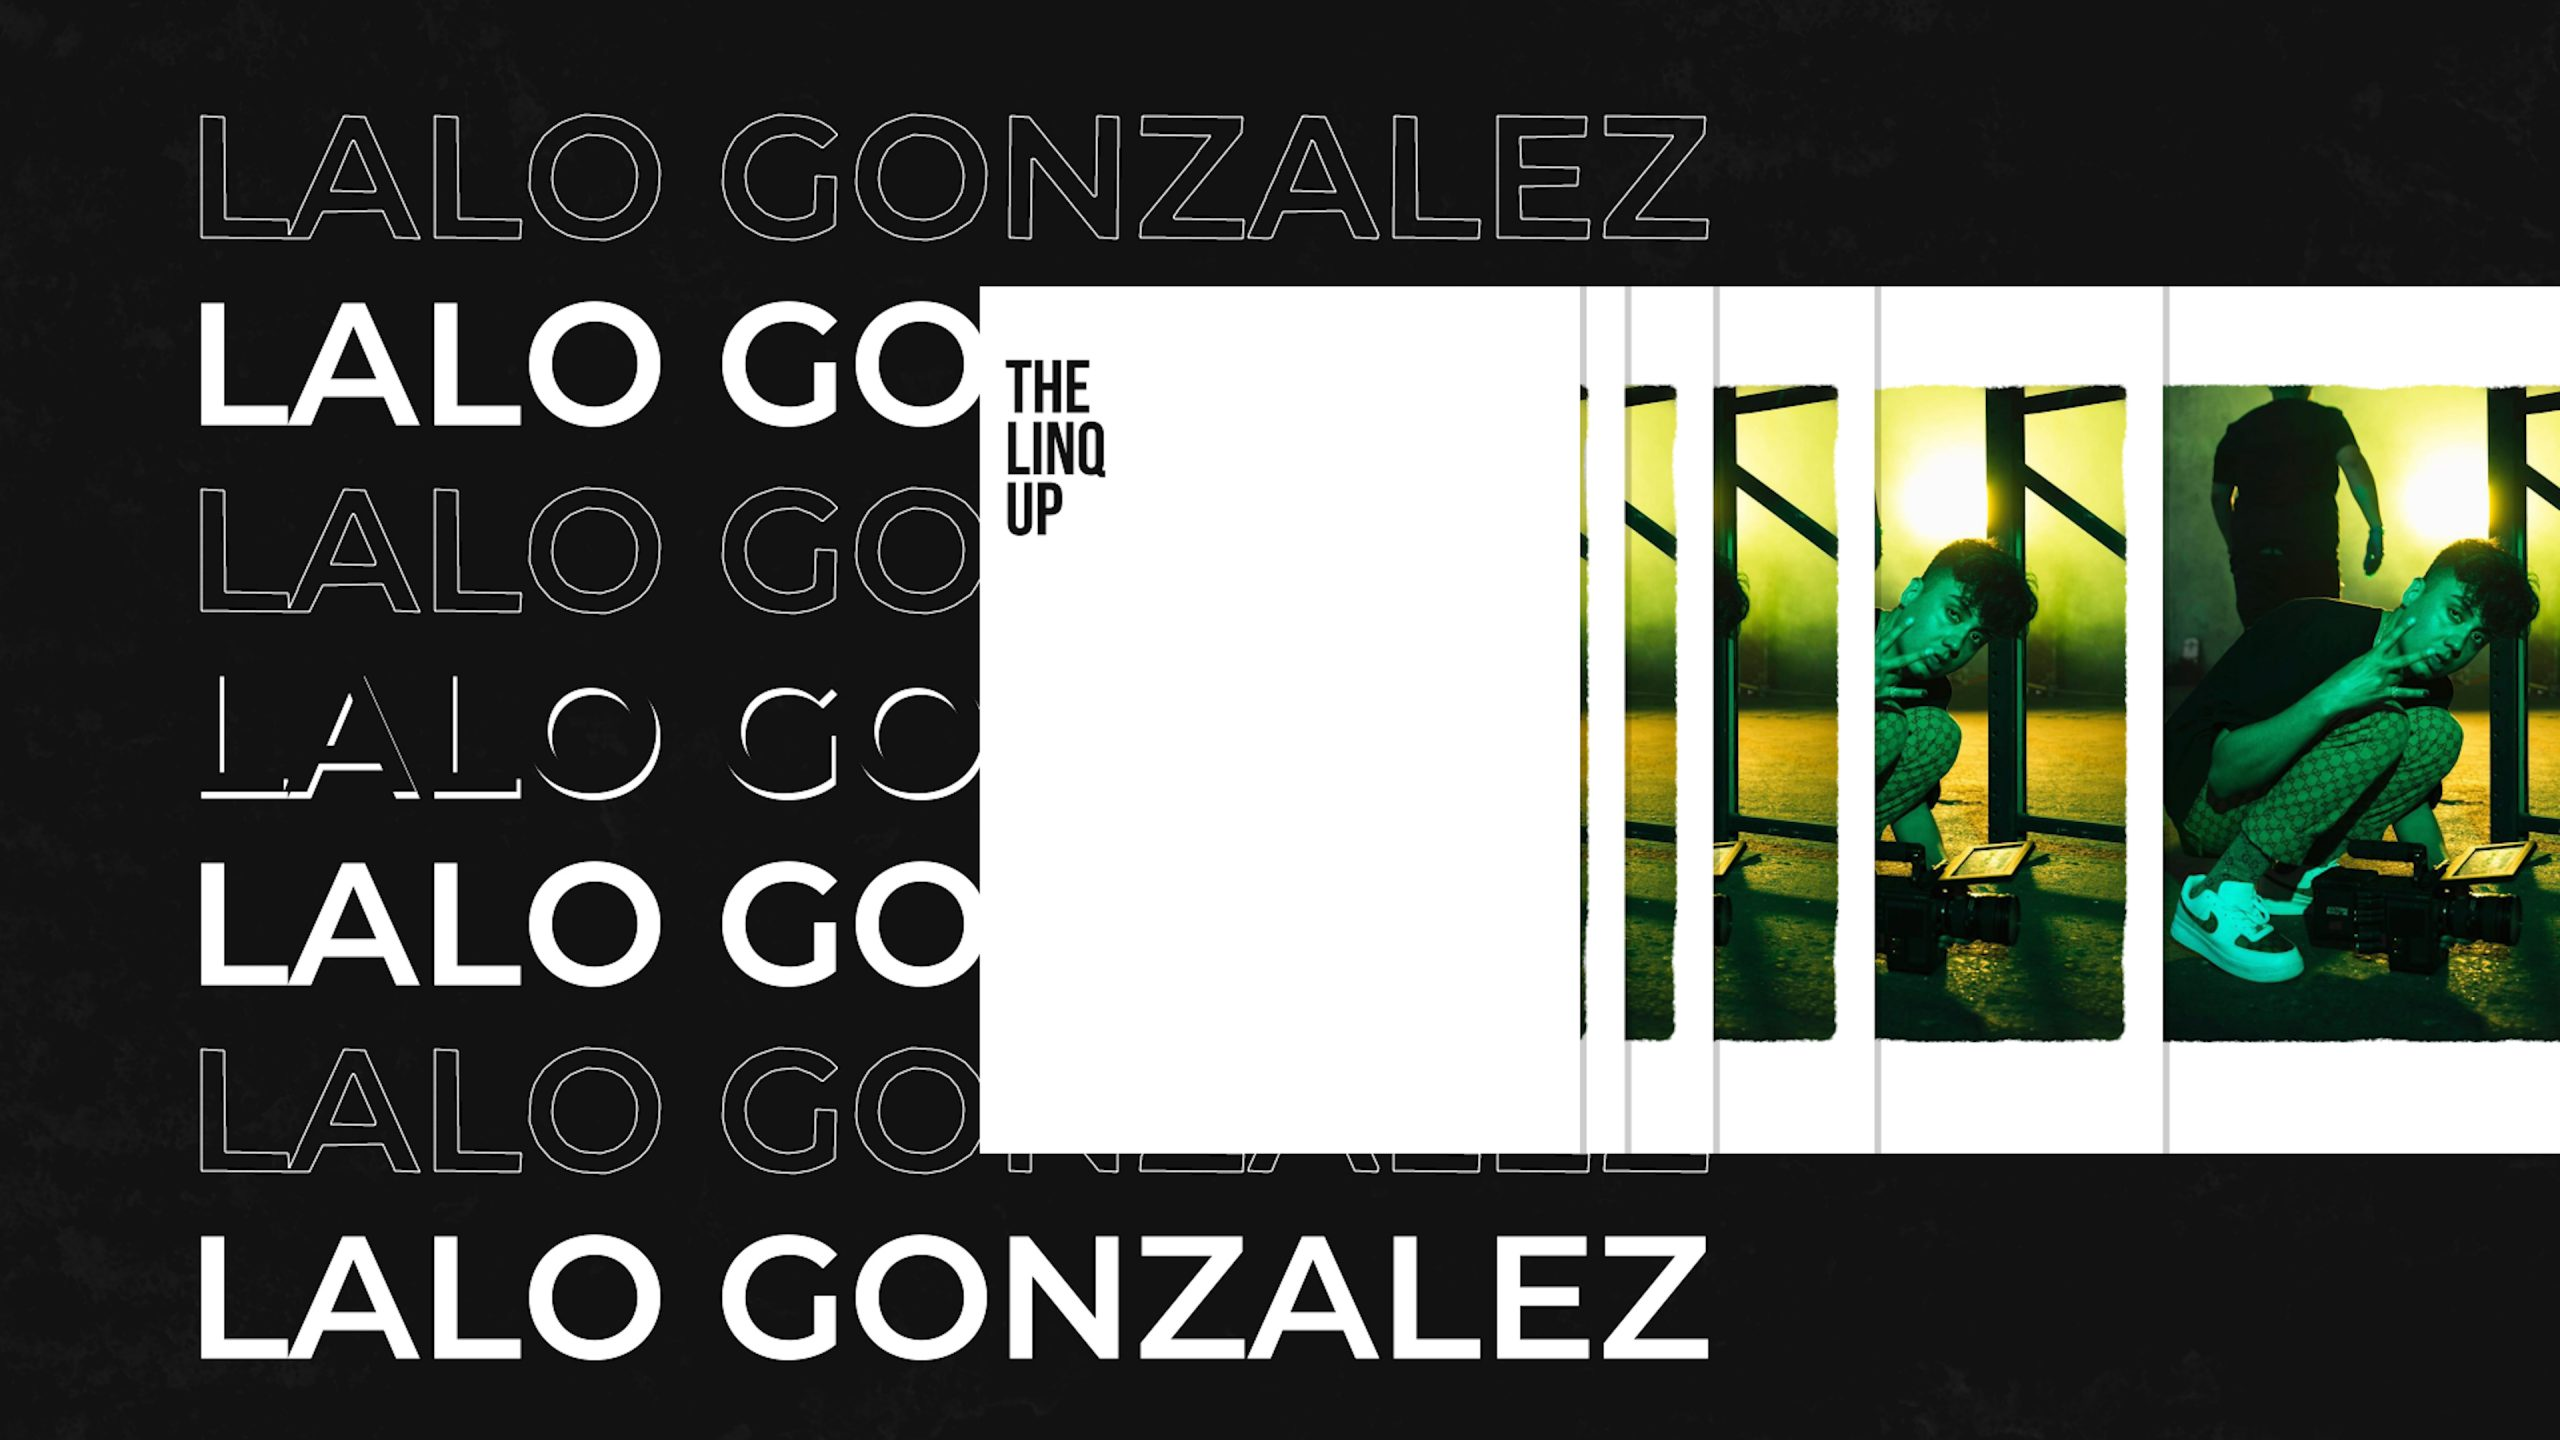 Lalo Gonzalez x LINQ MAGAZINE Interview